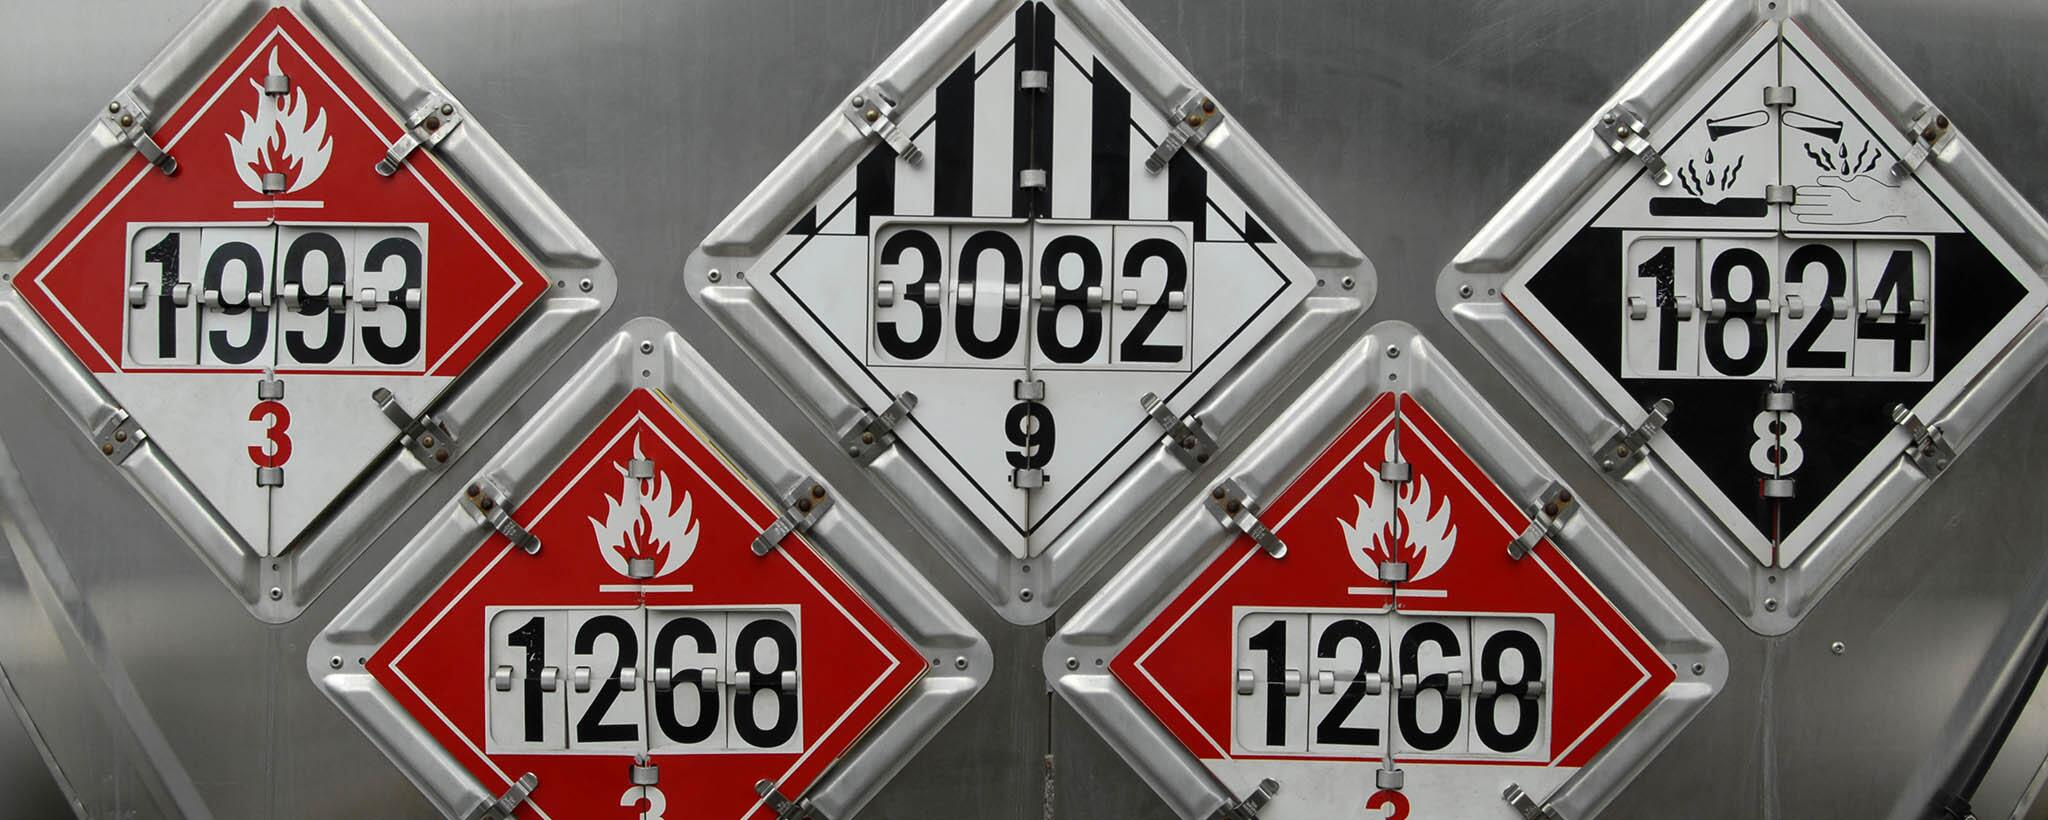 Five different hazardous materials signs showing different numbers and warnings